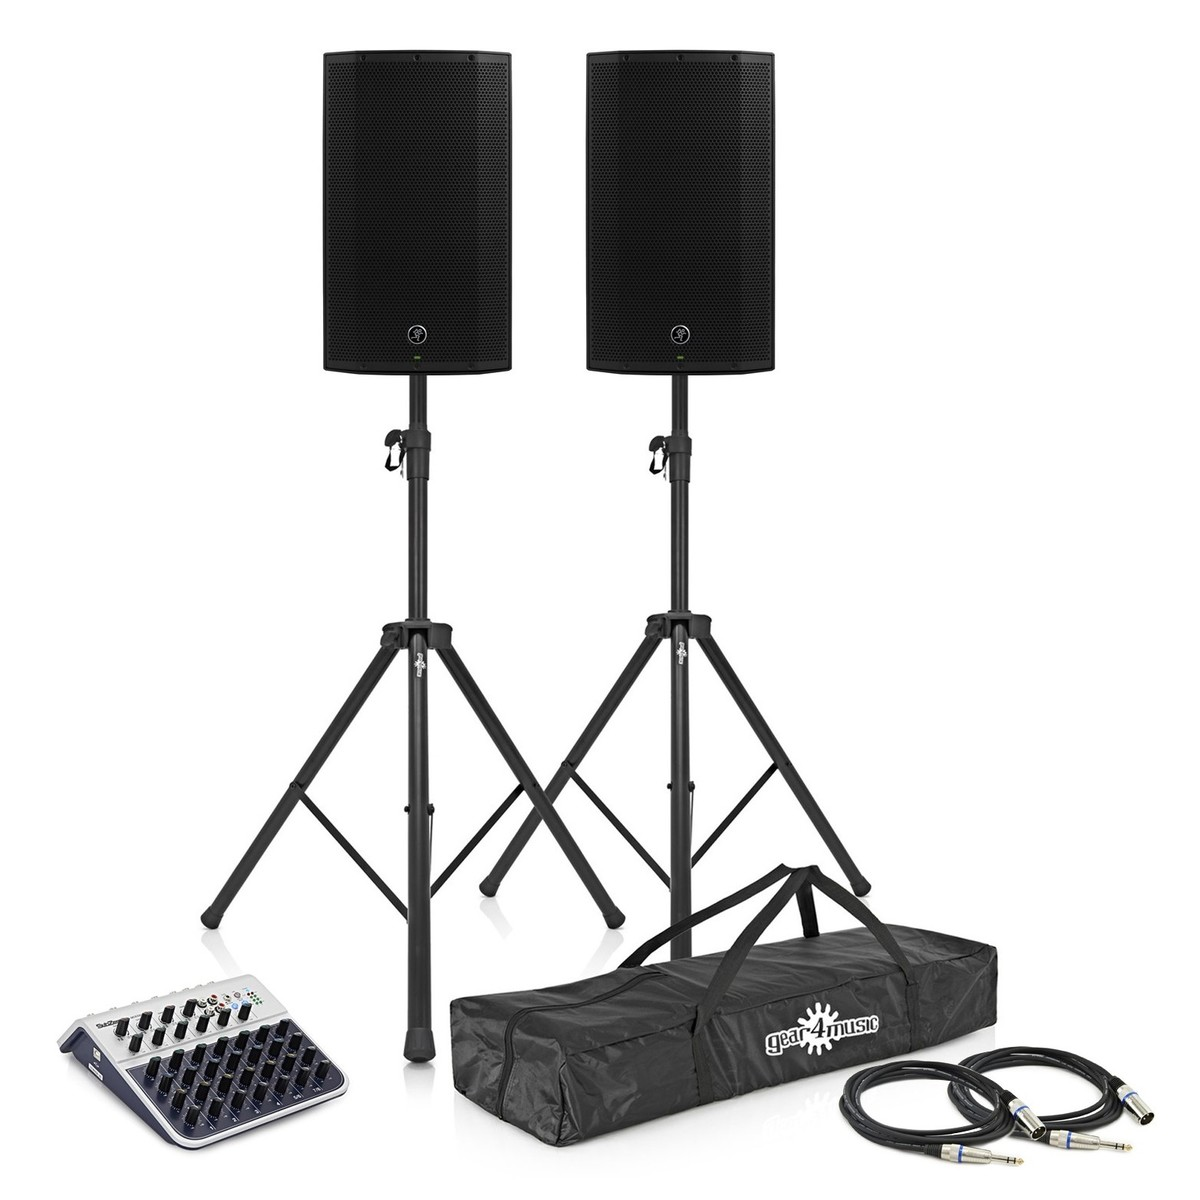 Mackie Thump 12BST Active PA Speakers with Stands and Mixer